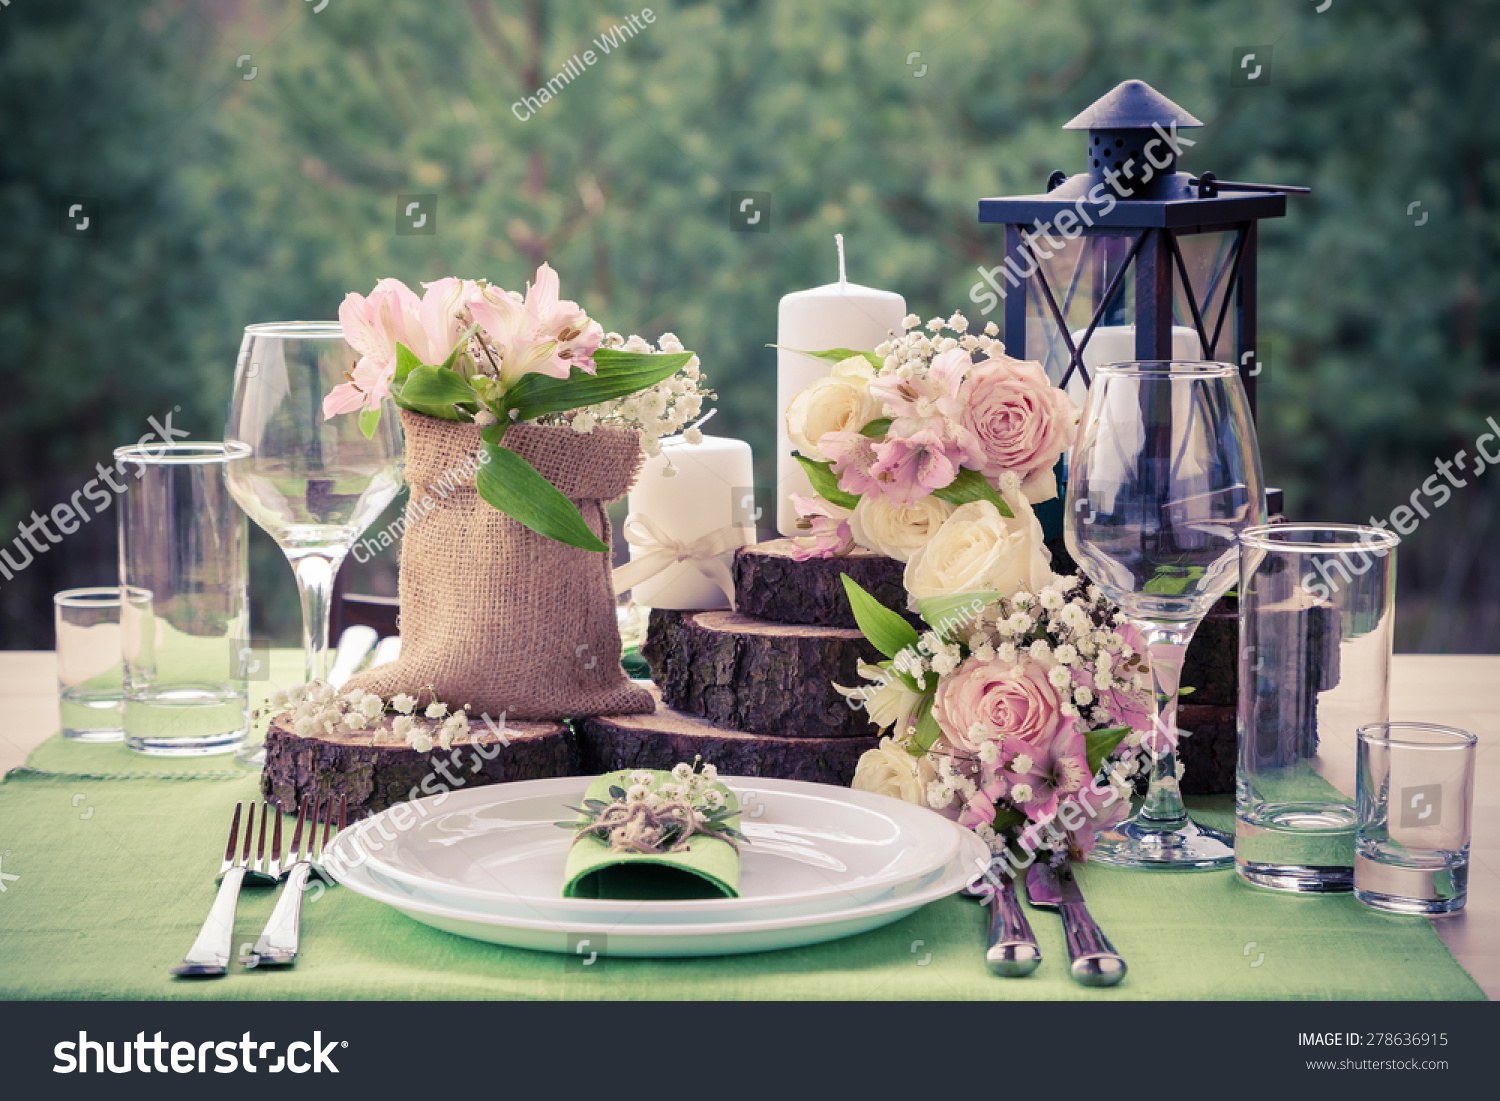 Wedding table setting in rustic style. & Wedding Table Setting Rustic Style Stock Photo (Royalty Free ...